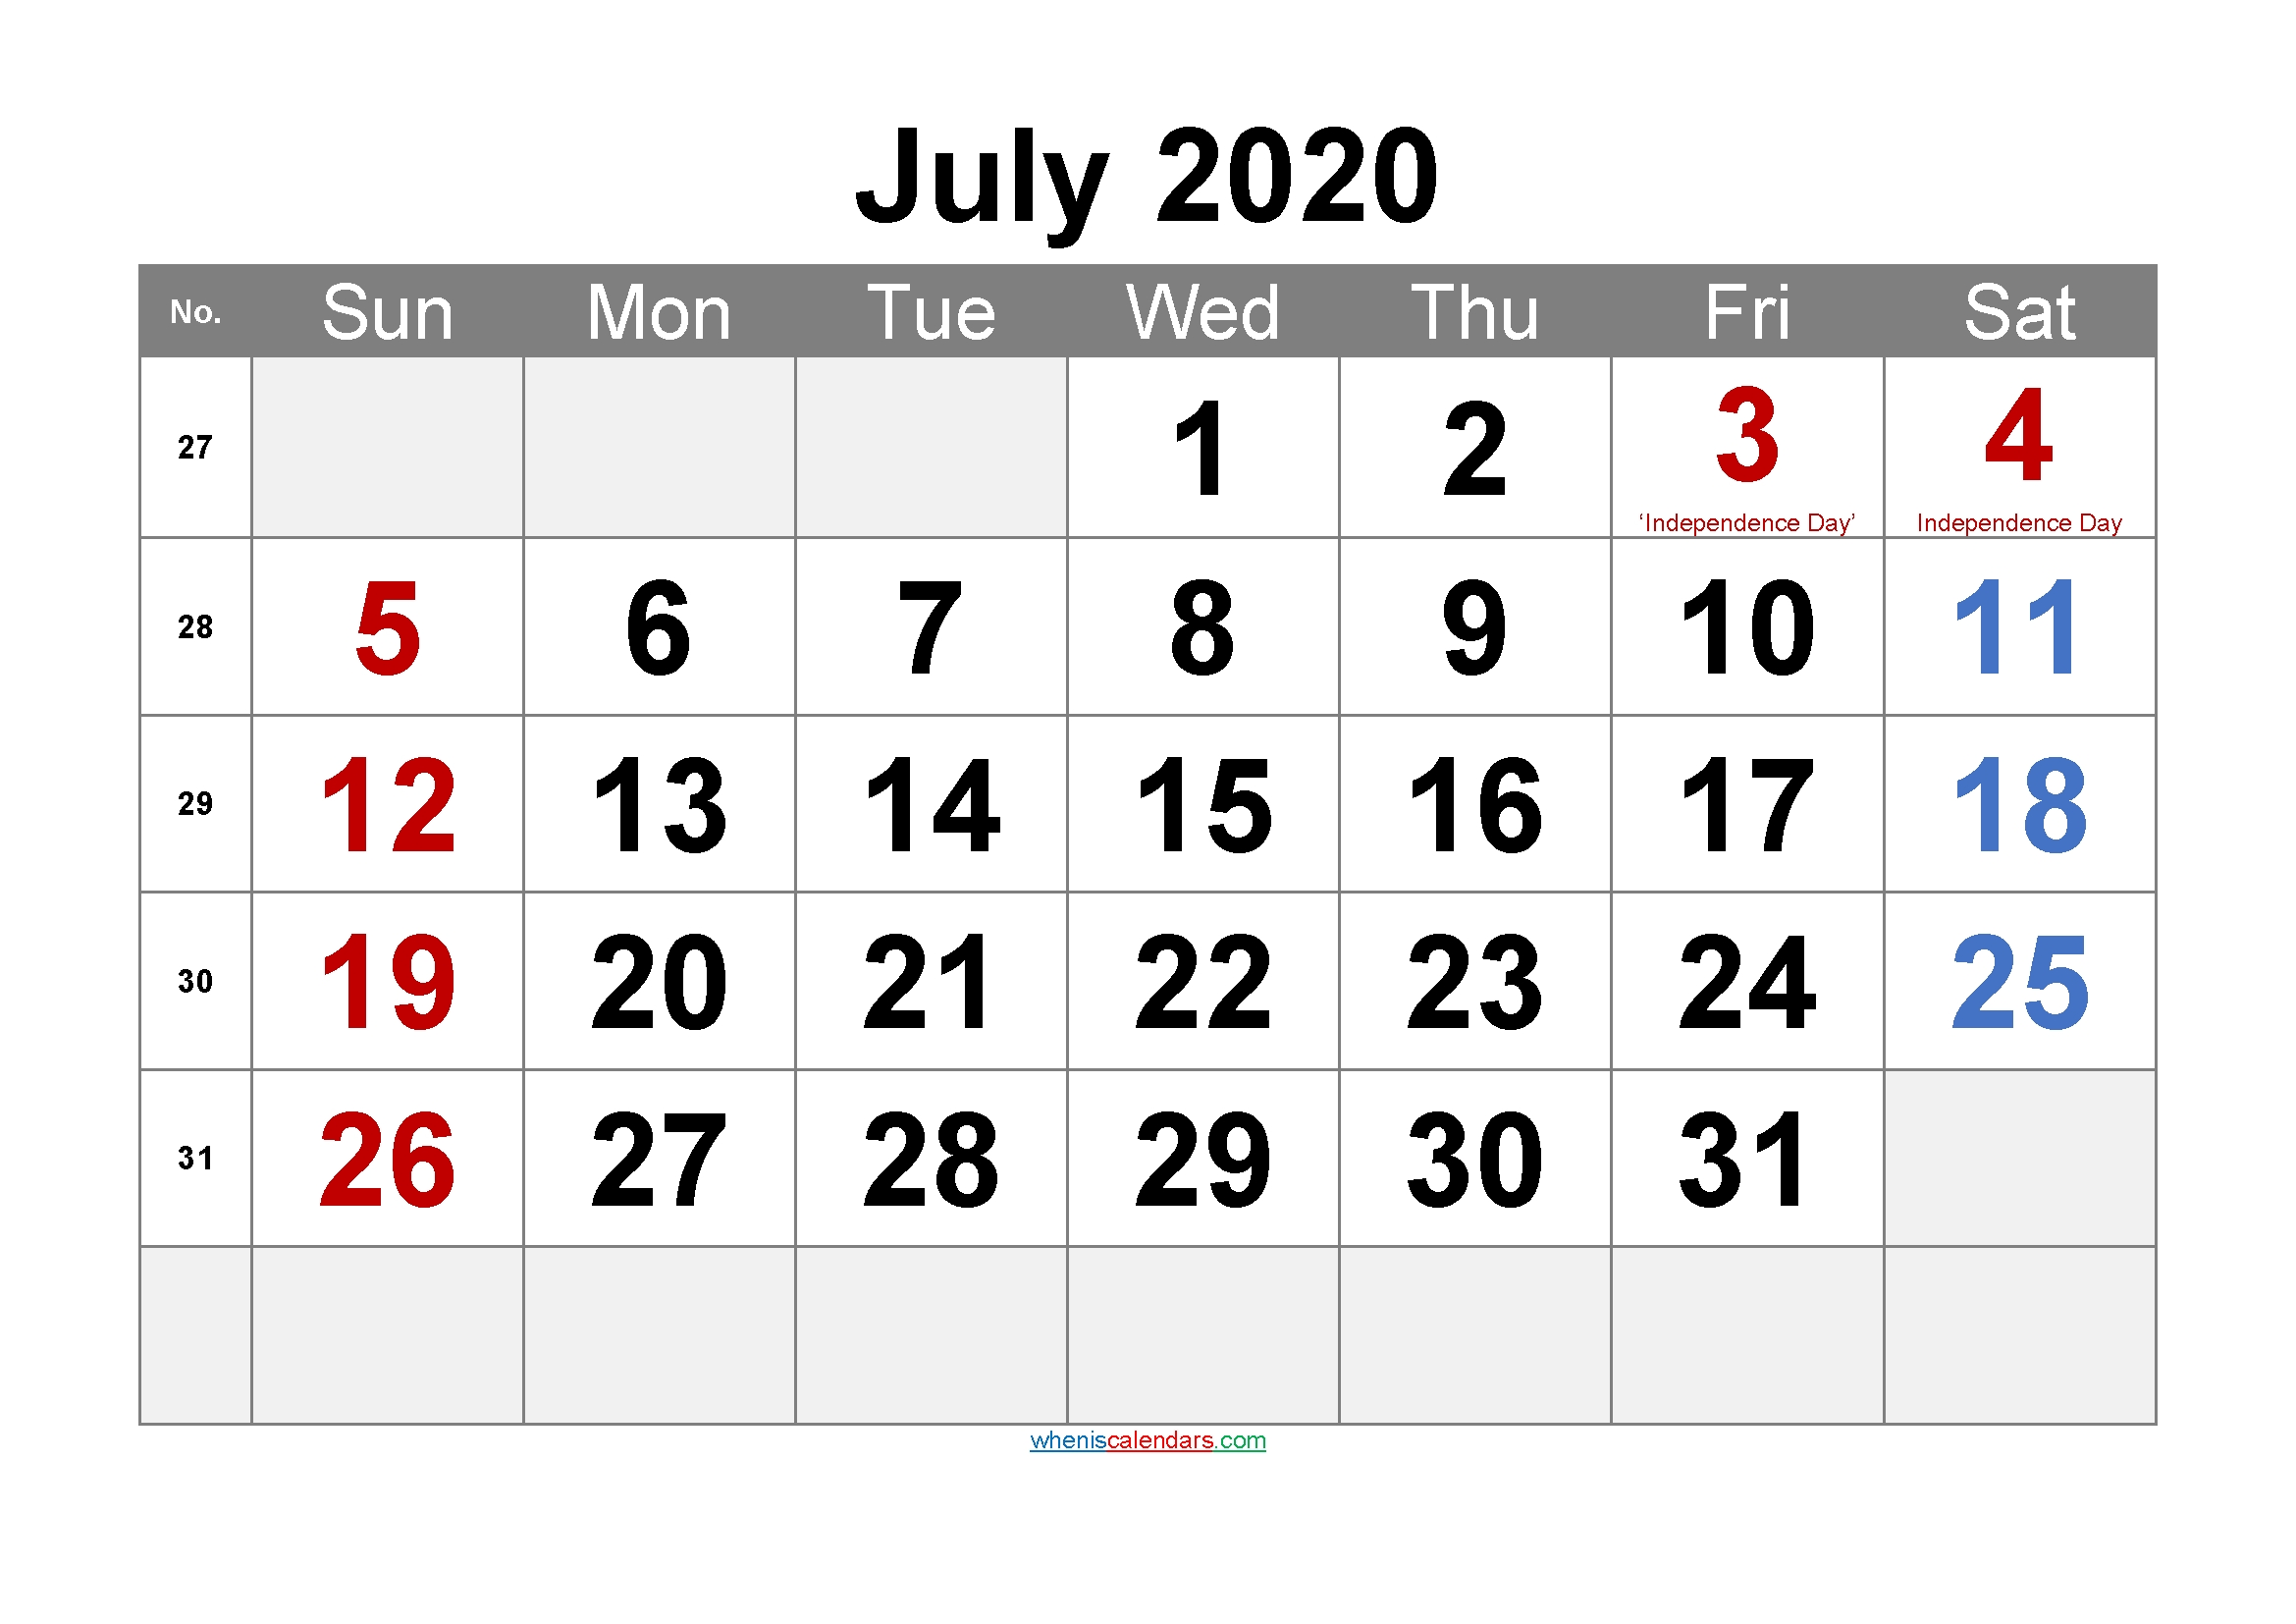 July 2020 Printable Calendar With Holidays - 6 Templates